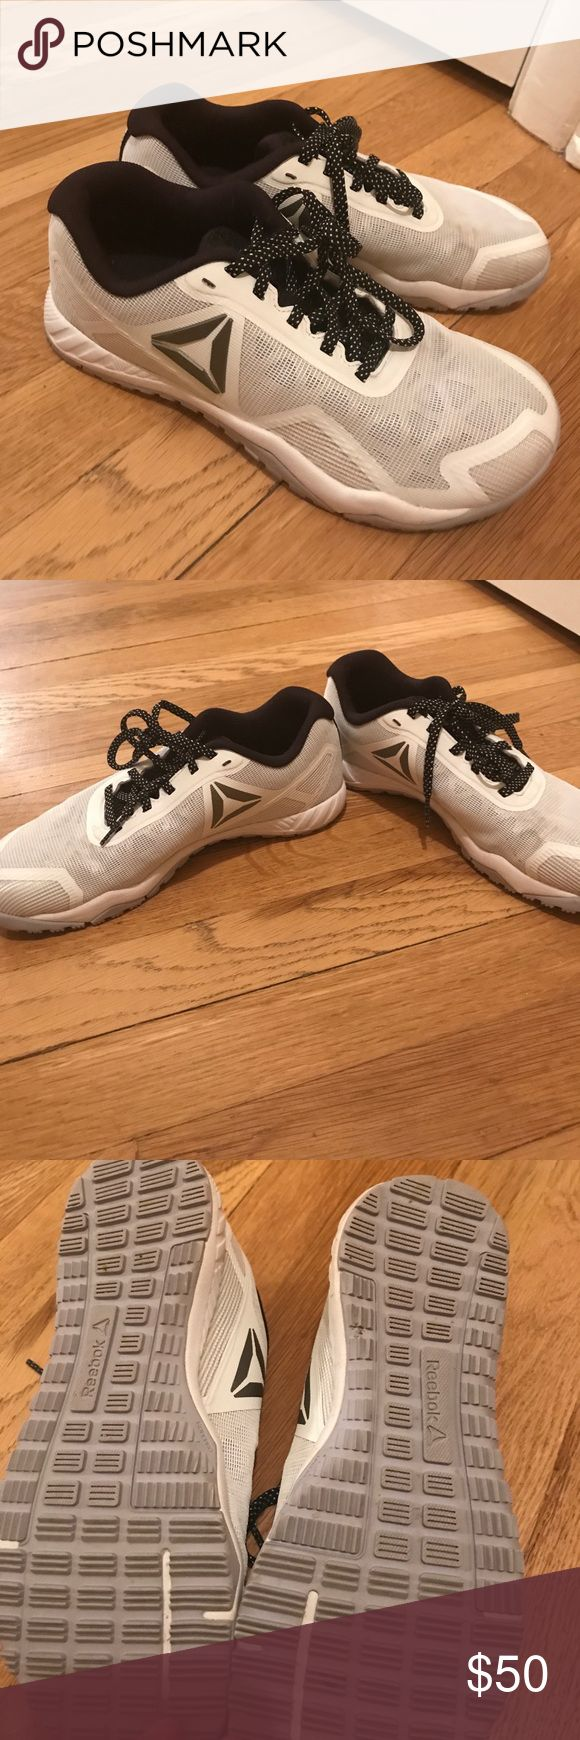 Like new Reebok training shoes These are in like new condition. Worked out in only a handful of times. The left shoe has a scuff on the top that may come out, I just haven't tried. Great for crossfit, bodyweight, or weightlifting workouts! Reebok Shoes Athletic Shoes